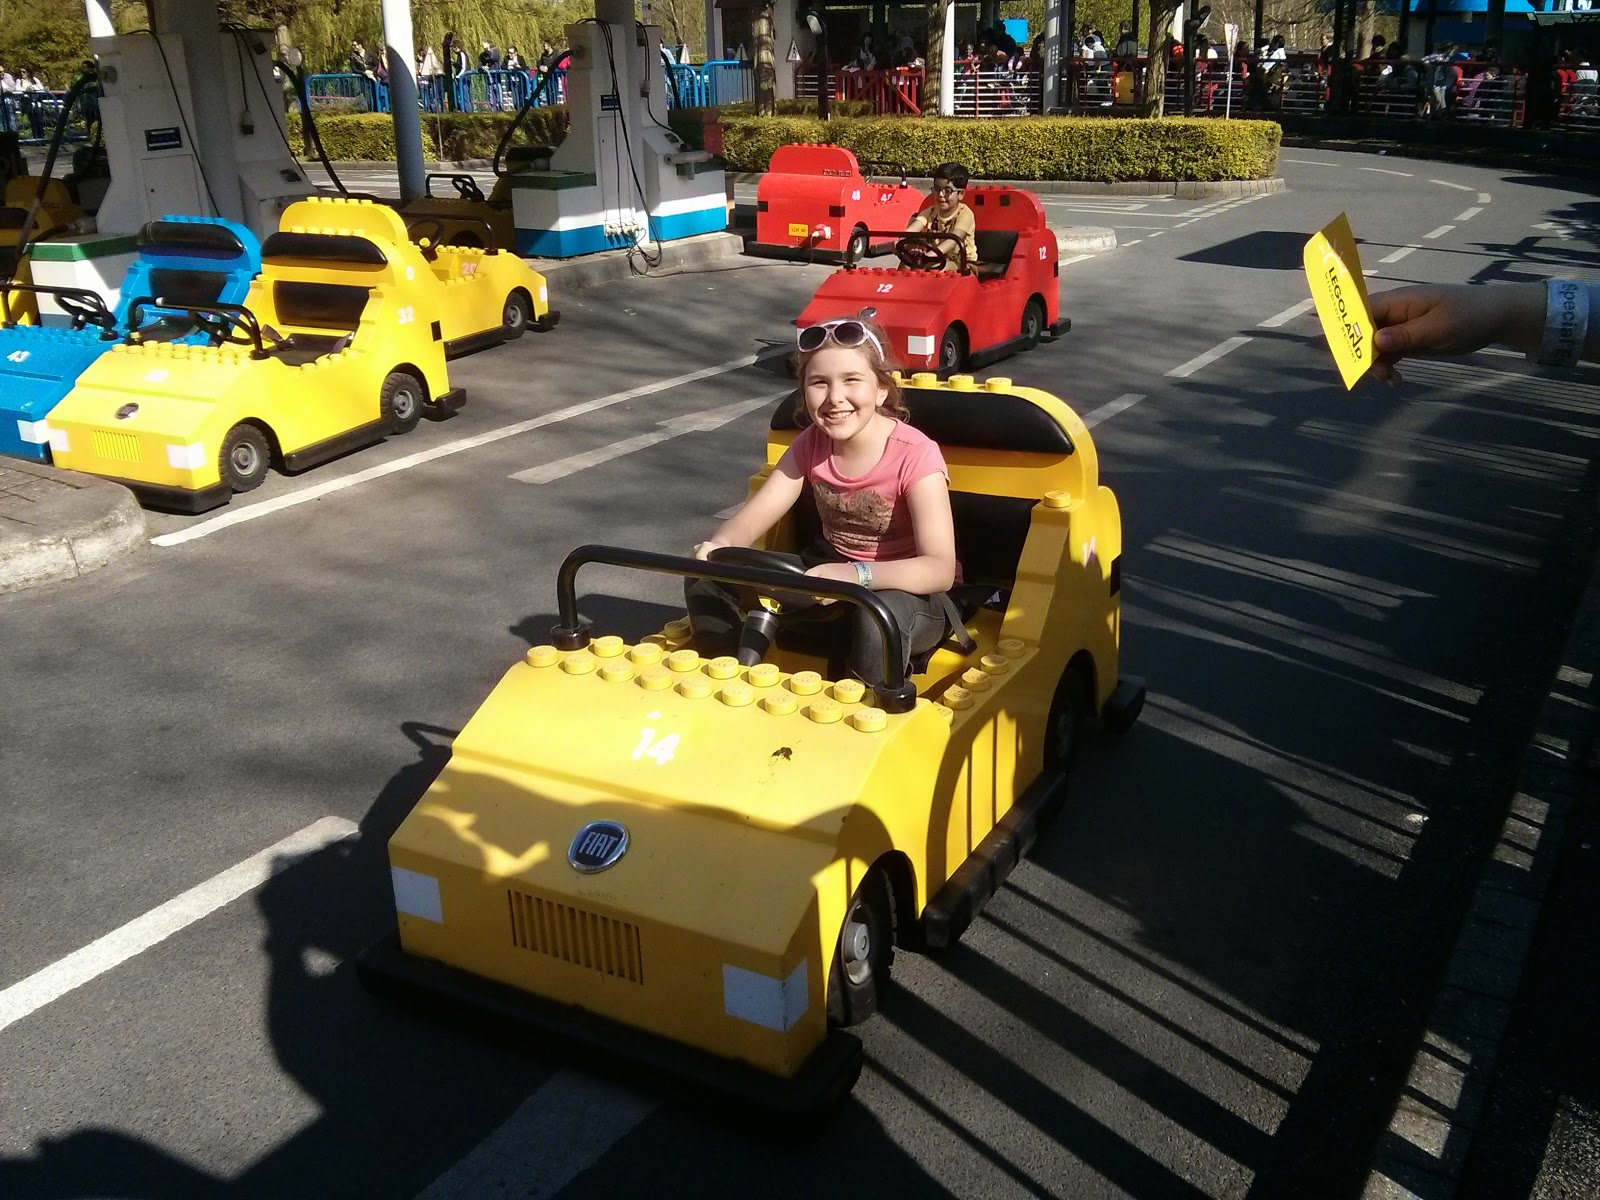 Top Ender driving at LEGOLAND Windsor